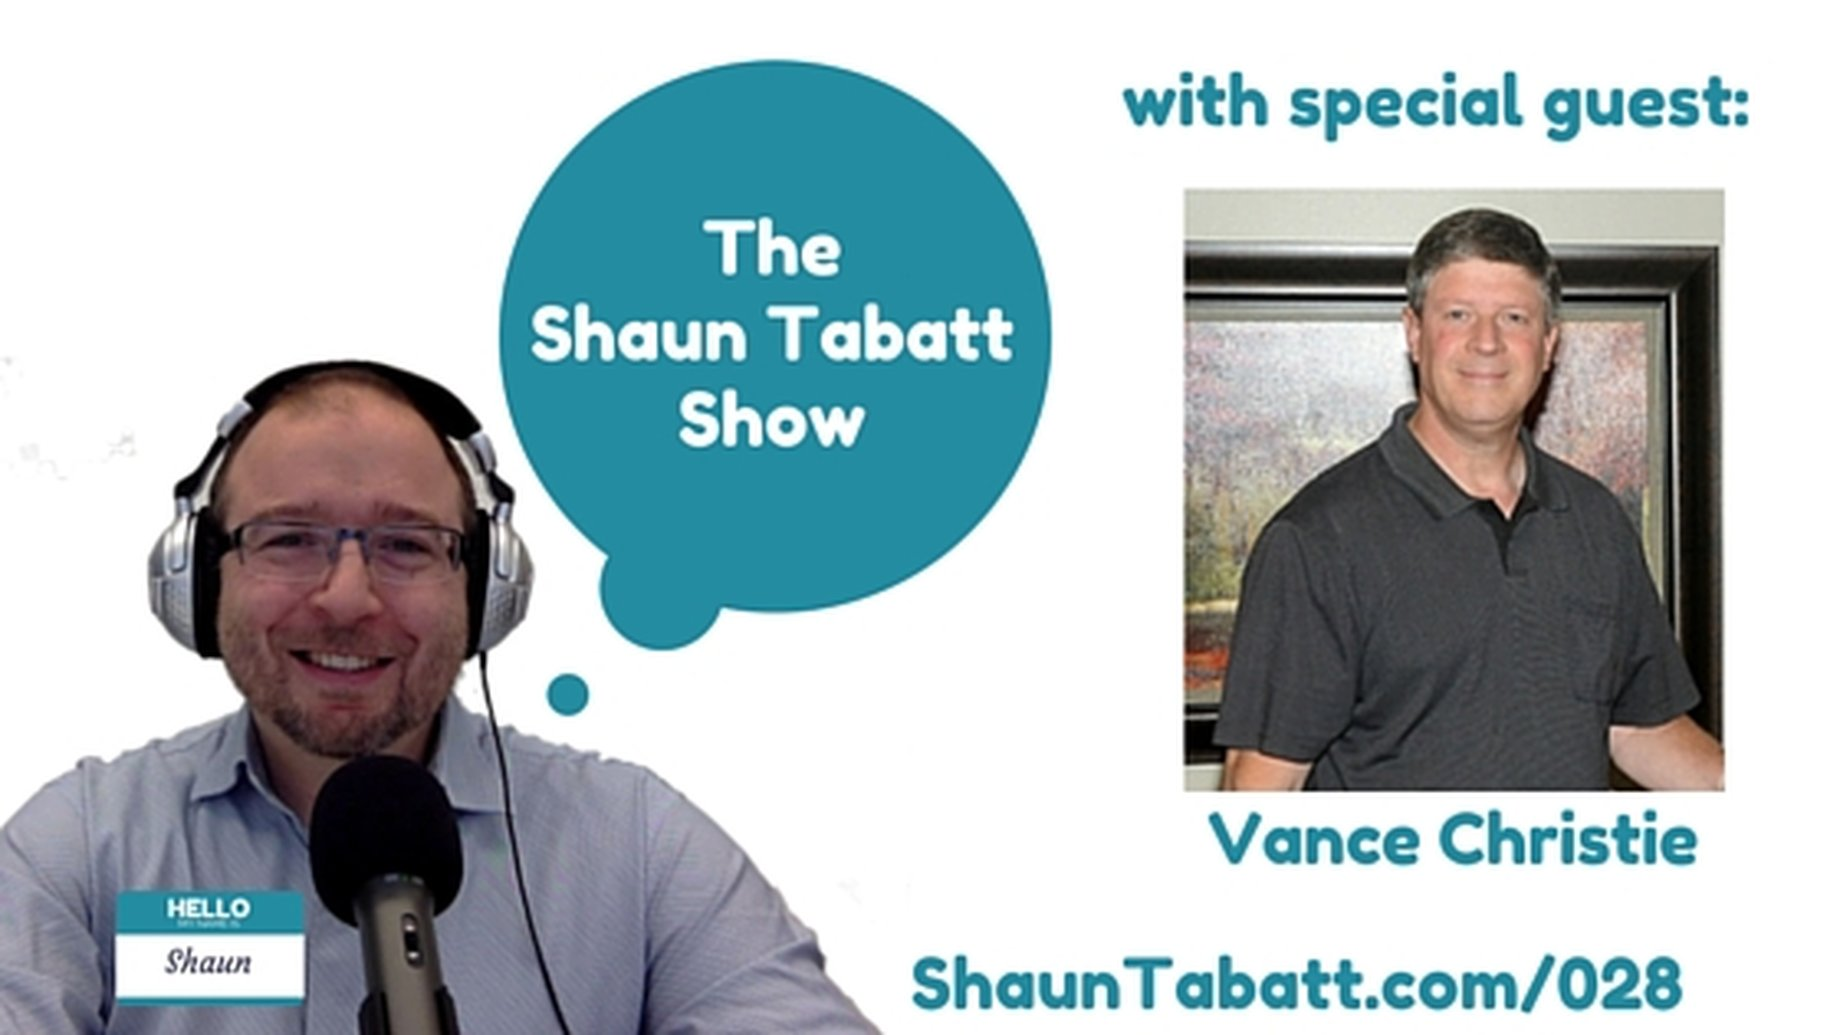 Vance Christie Visits The Shaun Tabatt Show to Share About the Life of Andrew Murray